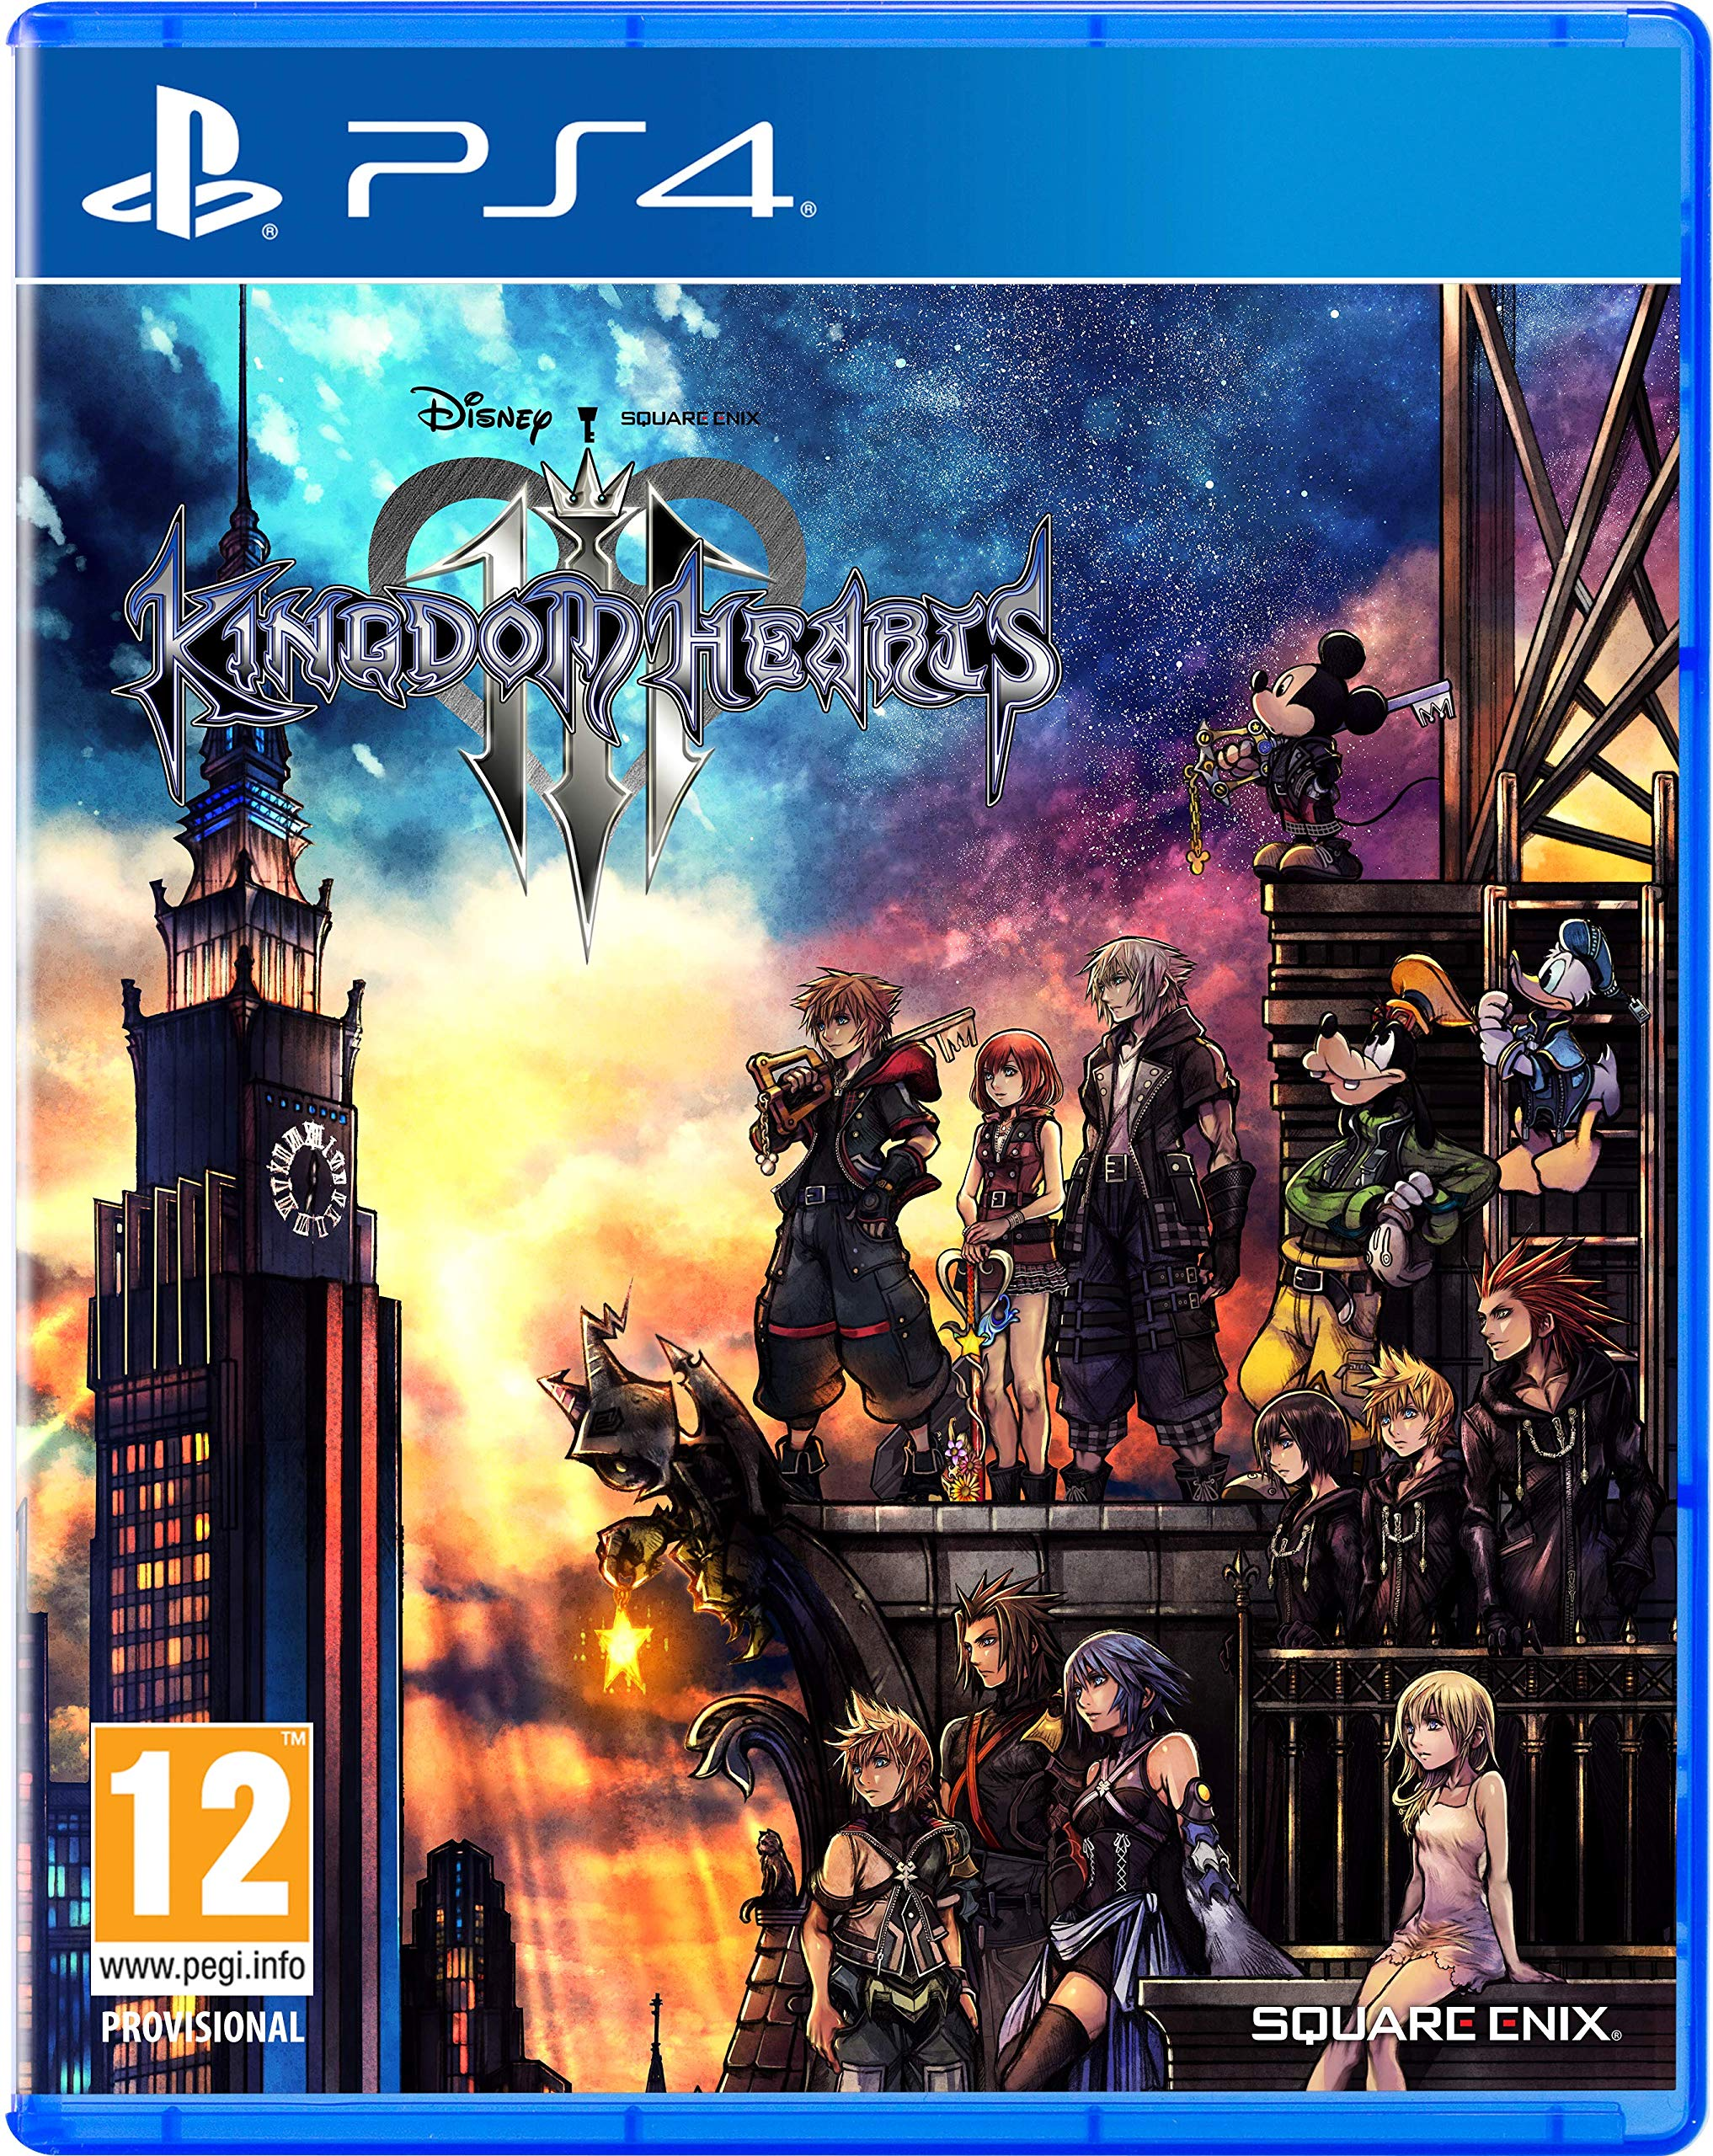 Kingdom Hearts 3 (PS4) by Square Enix (Image #1)